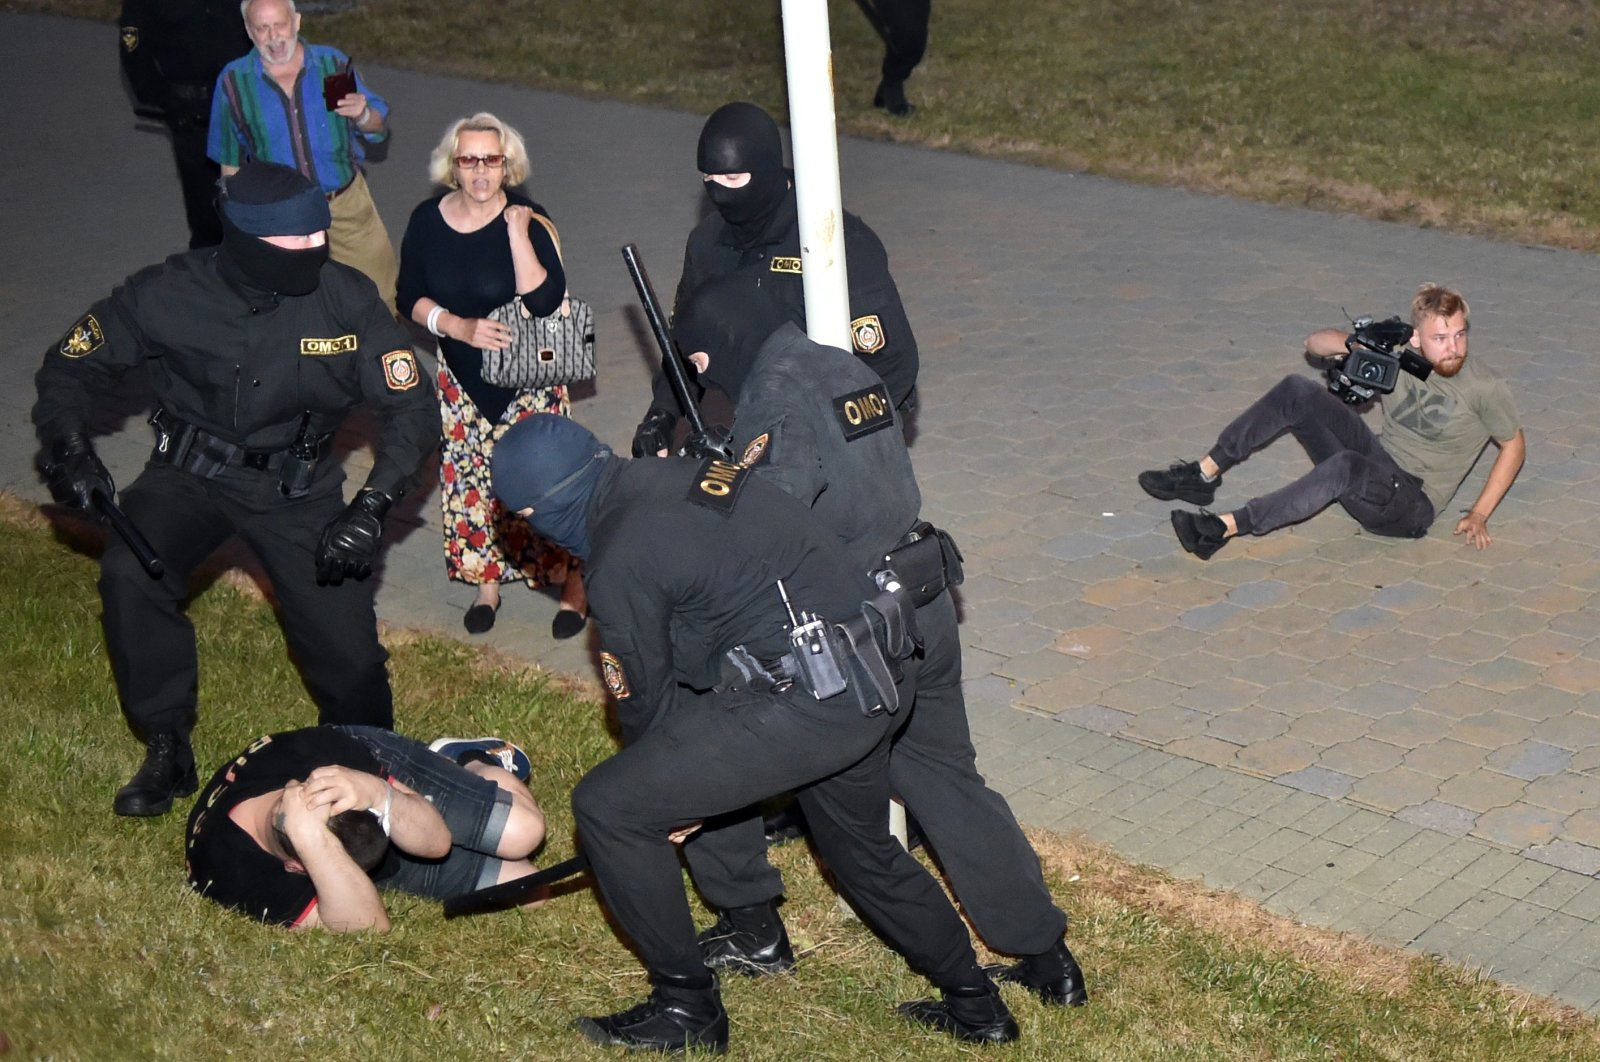 Riot police detain a demonstrator during a protest after polls closed in Belarus' presidential election, in Minsk, Belarus, Aug. 9, 2020. (AFP Photo)